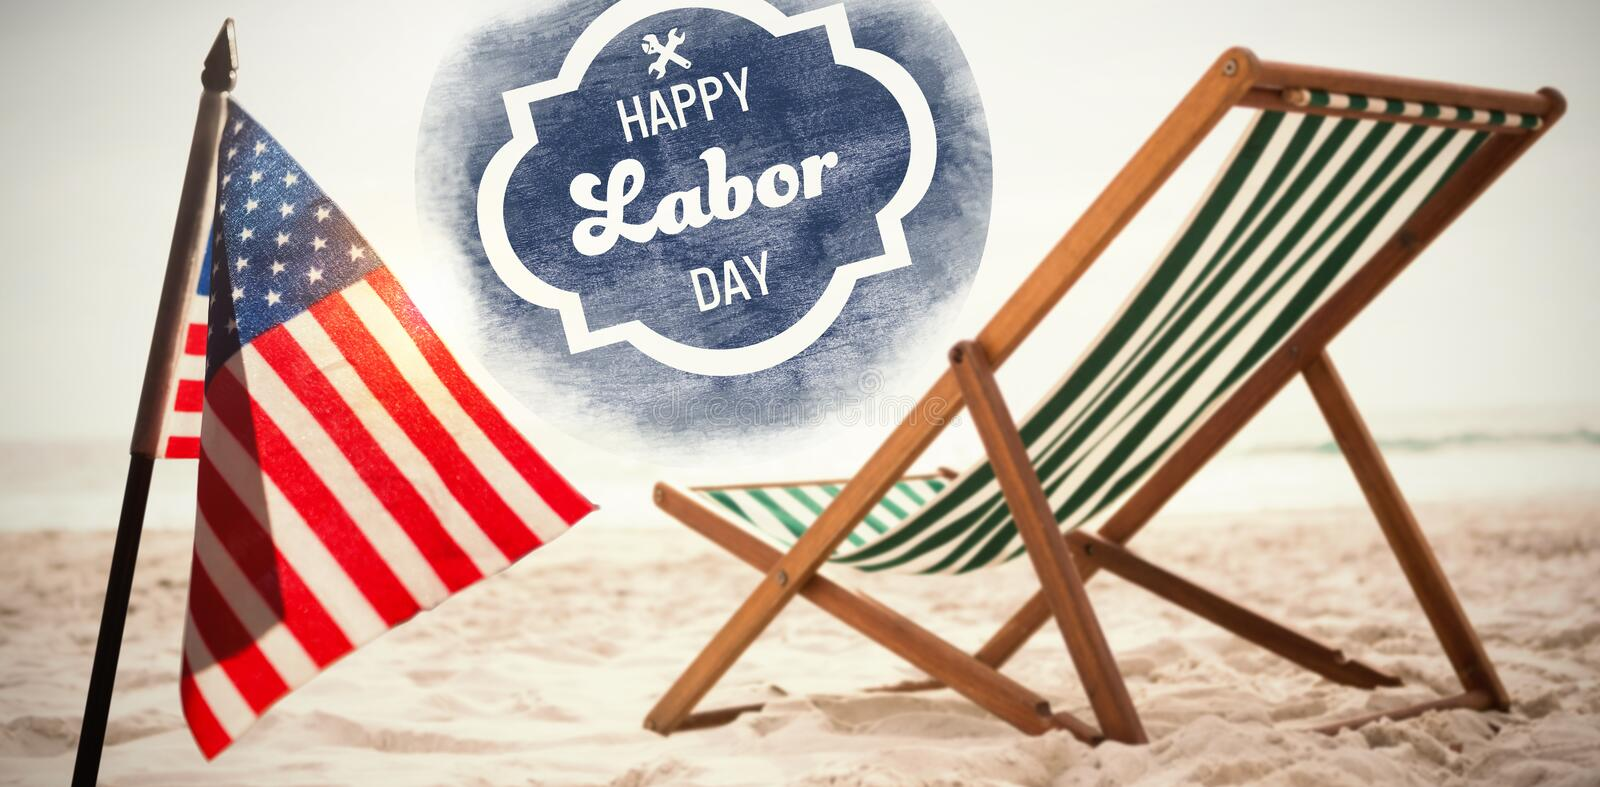 Composite image of digital composite image of happy labor day text with tools on blue poster royalty free stock photos